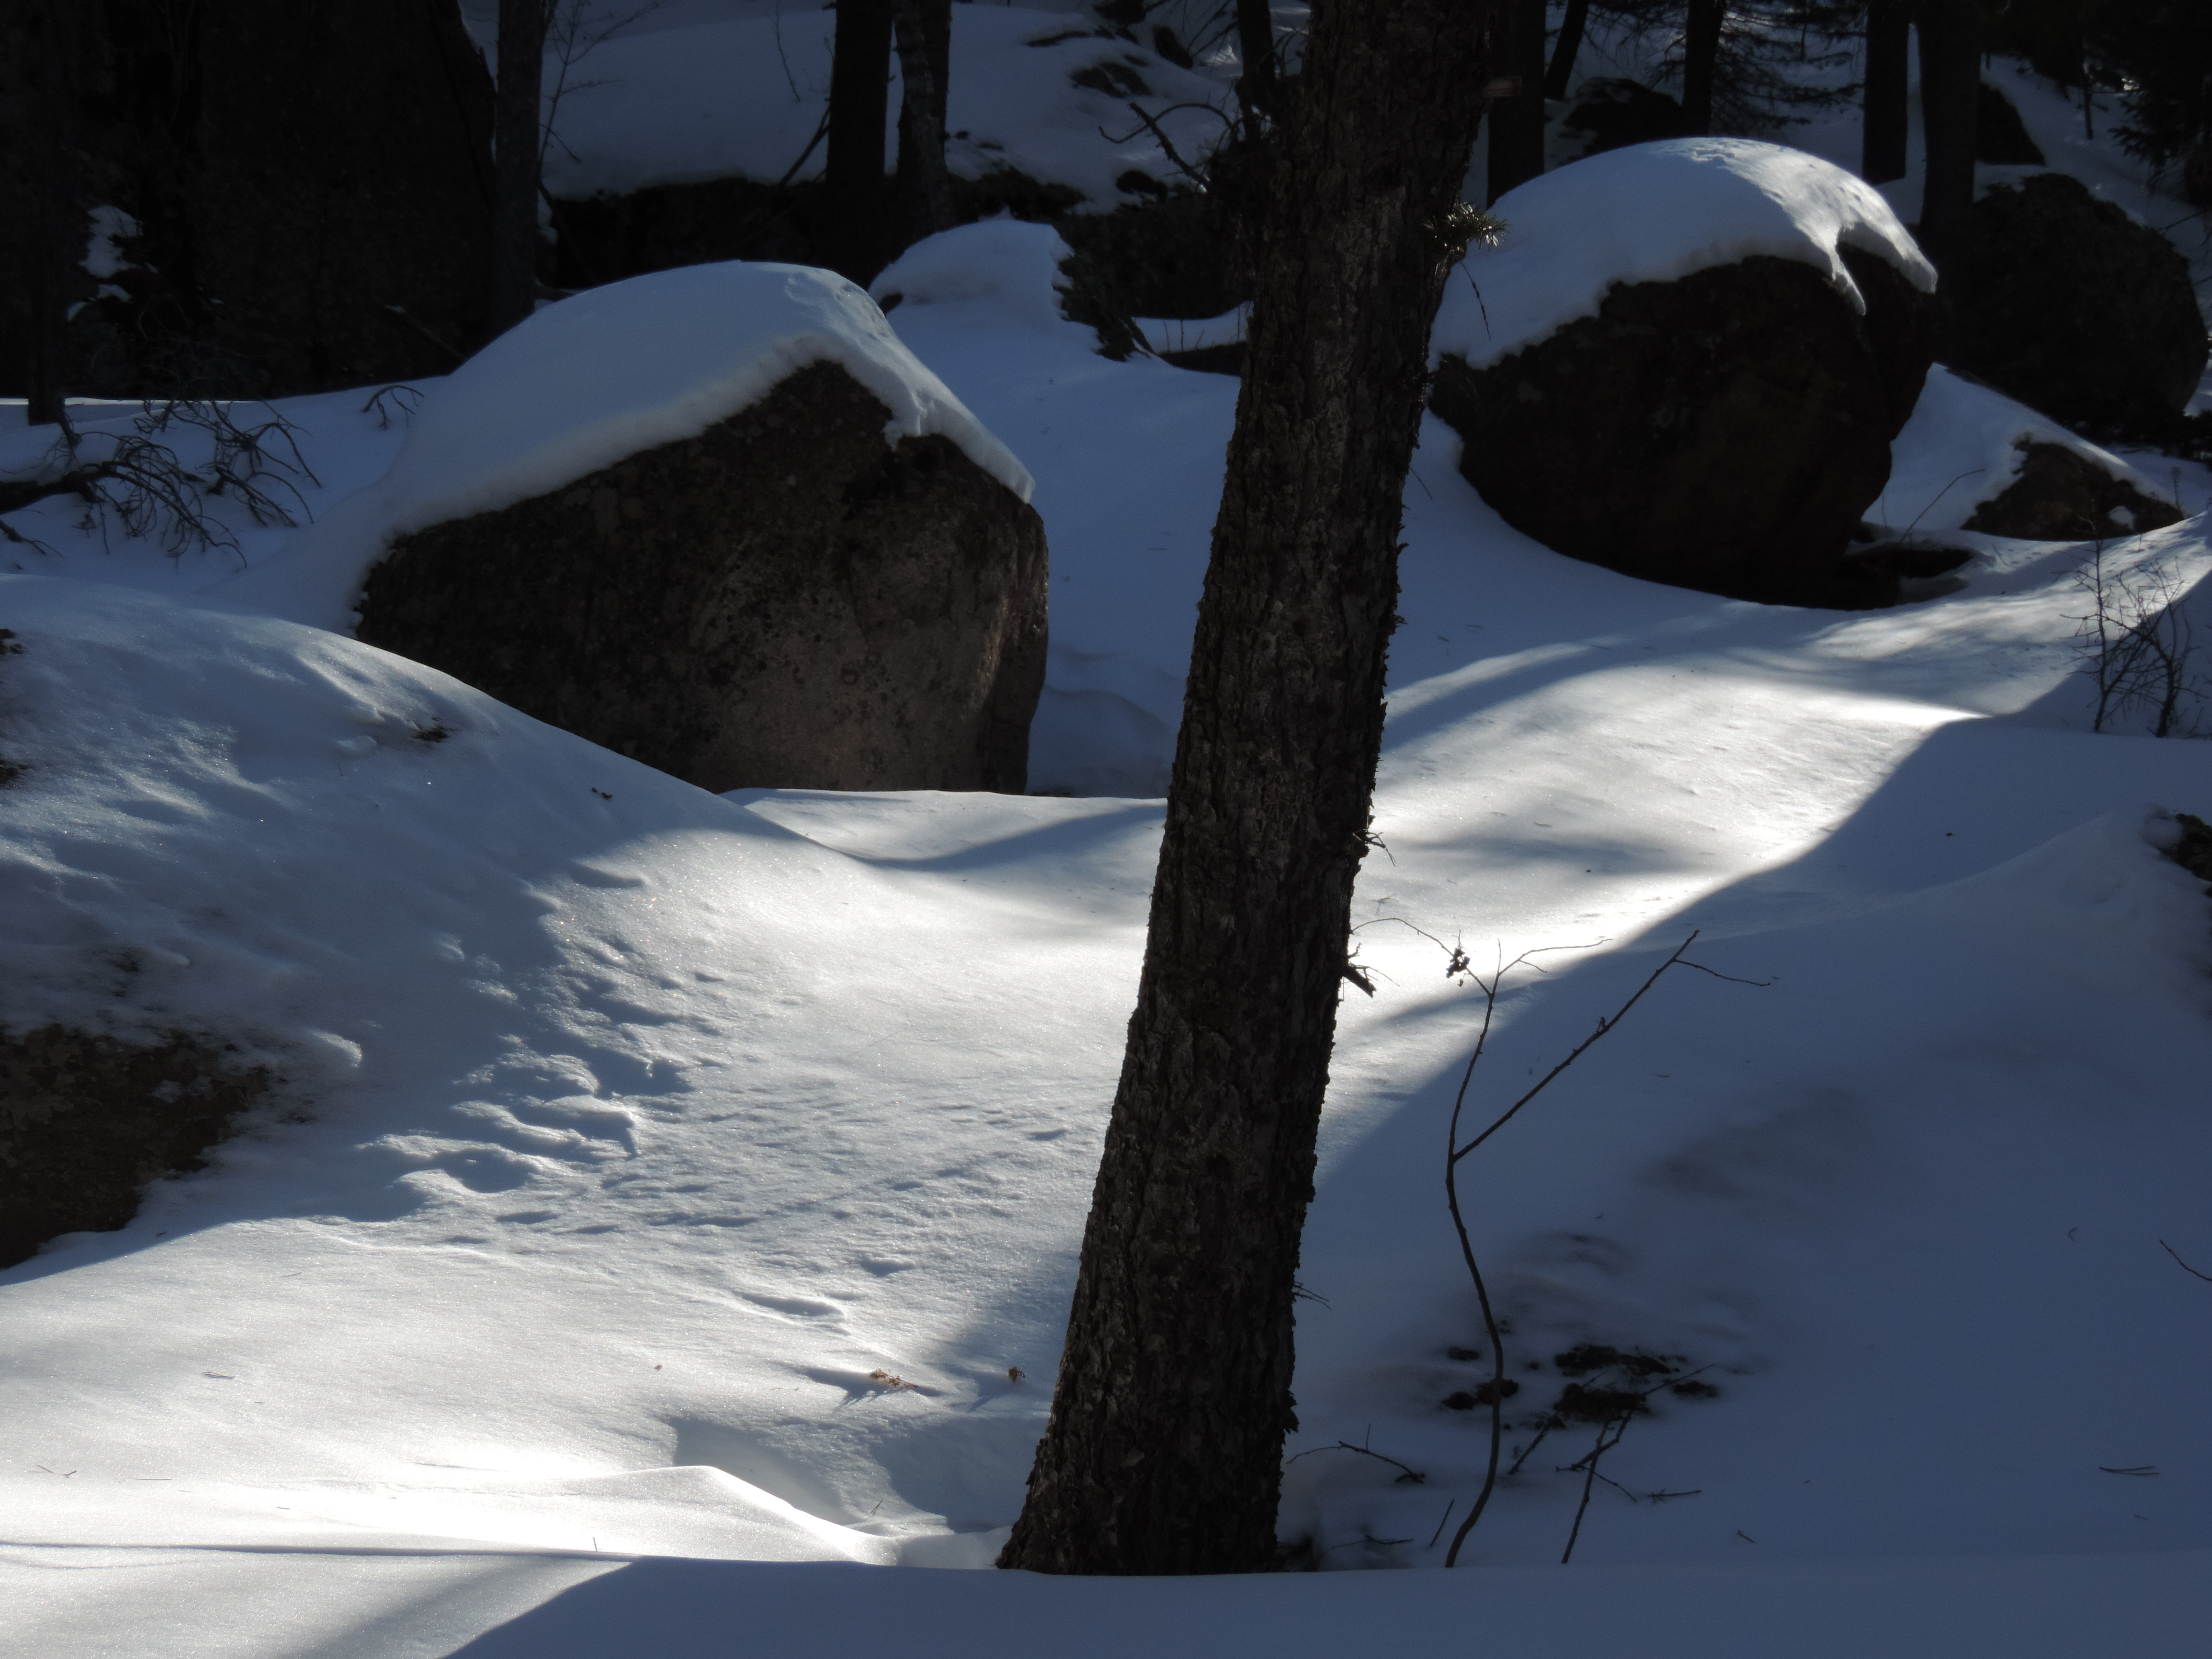 Cabin Journal: Shadows and Light, Once Again